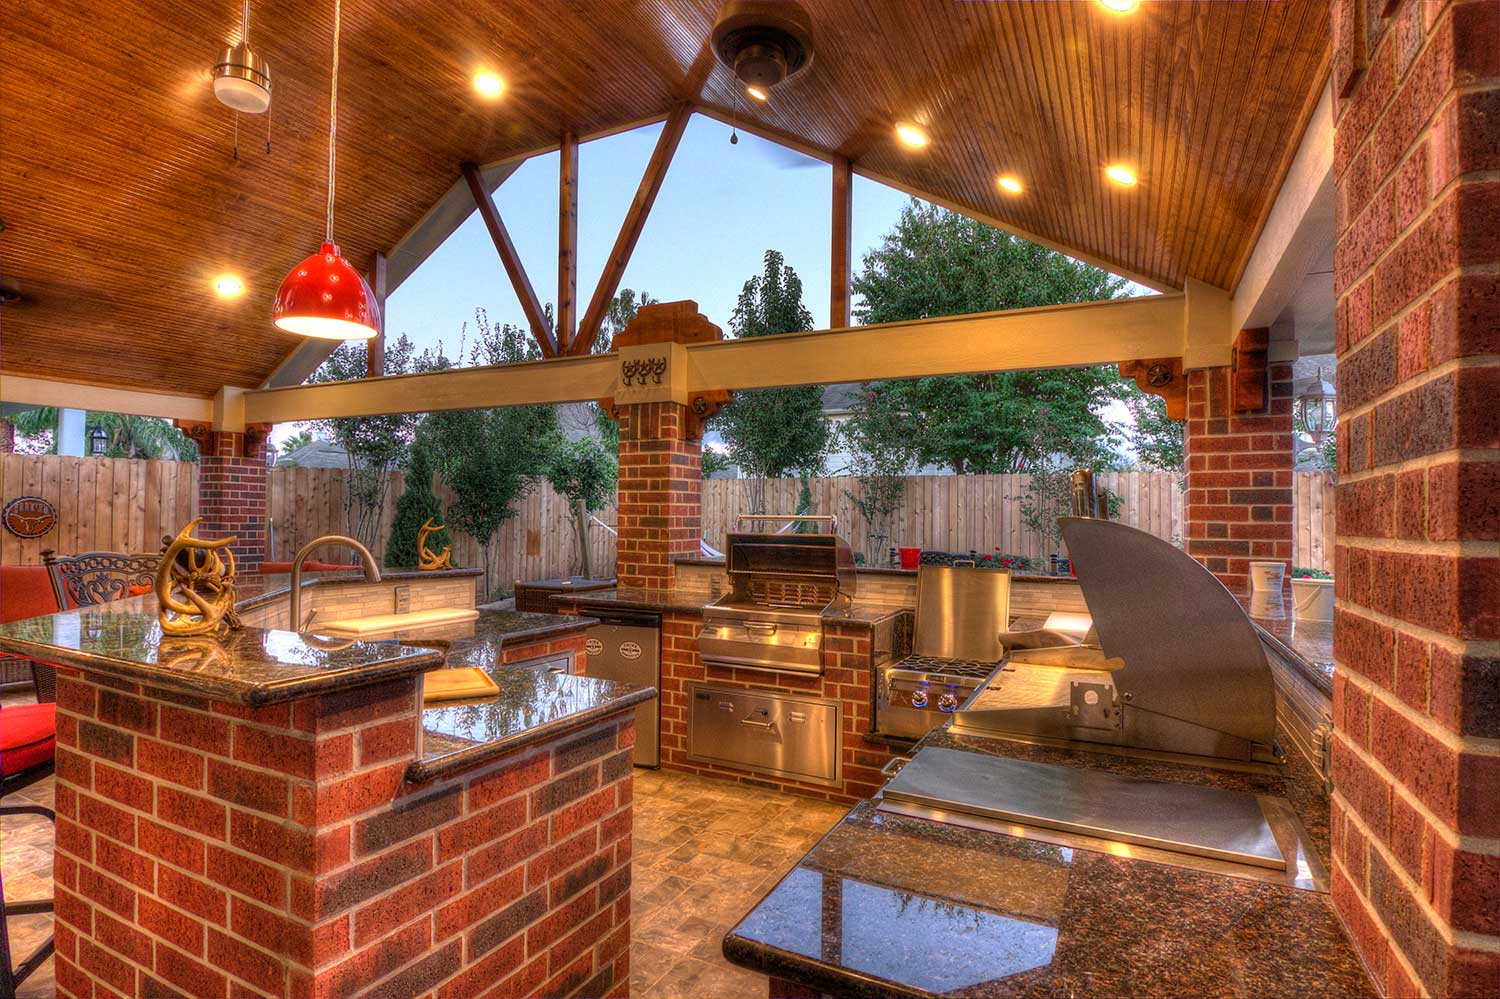 Patio Cover + Outdoor Kitchen - HHI Patio Covers on Backyard Patio Cover  id=75761